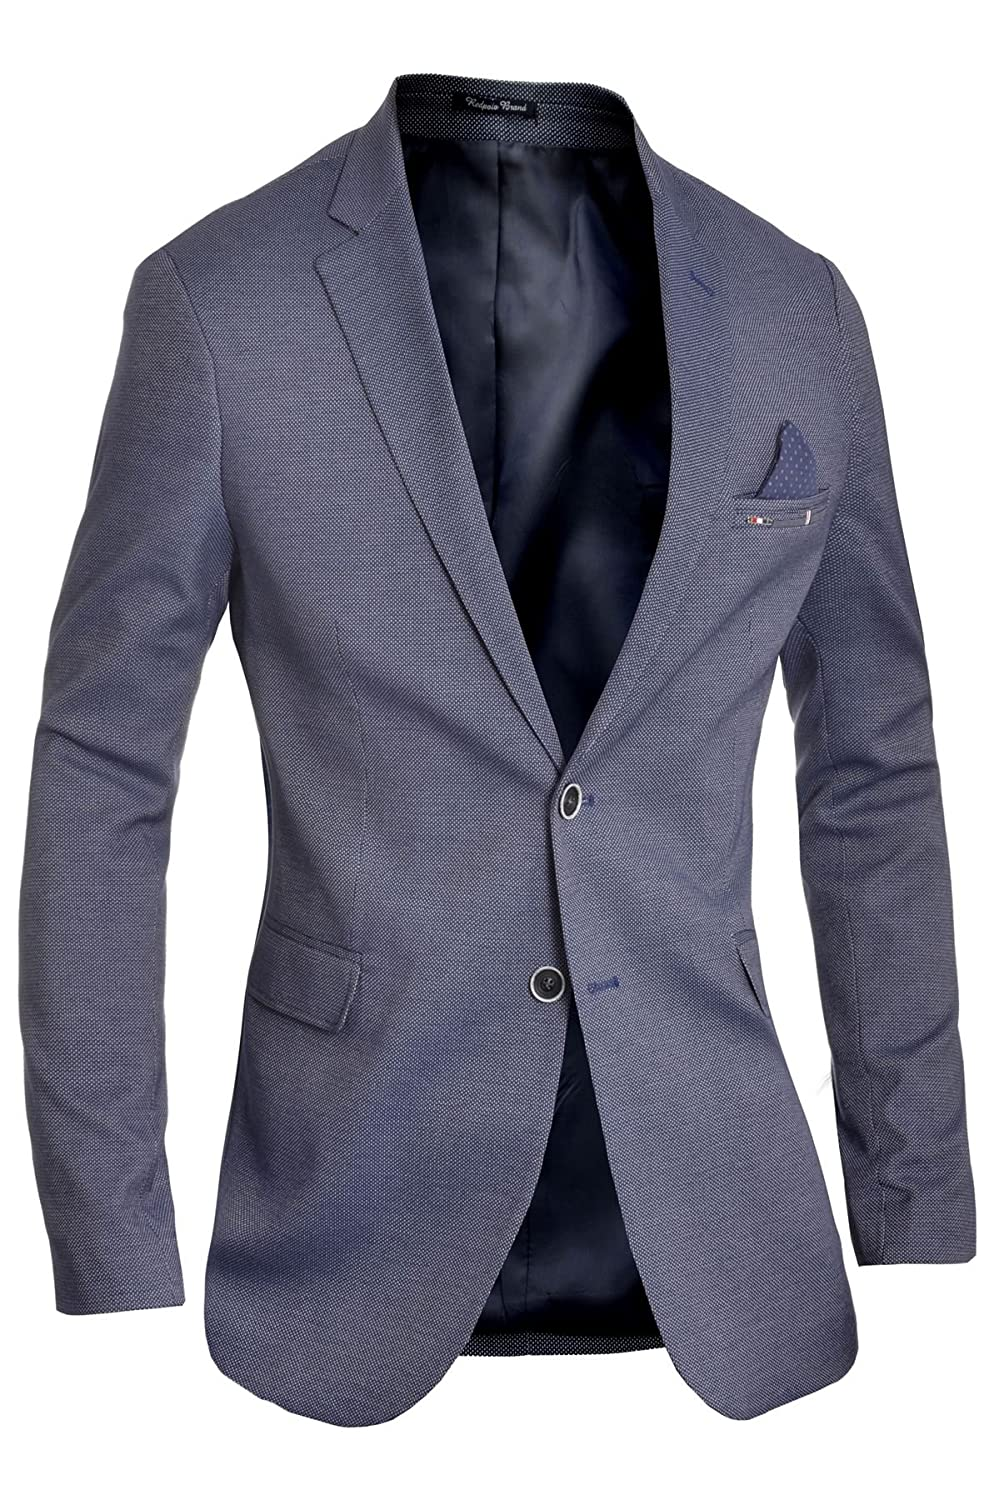 Men's Classic Design Blazer Jacket Blue Casual Contrast Finish Slim Soft Cotton D&R Fashion